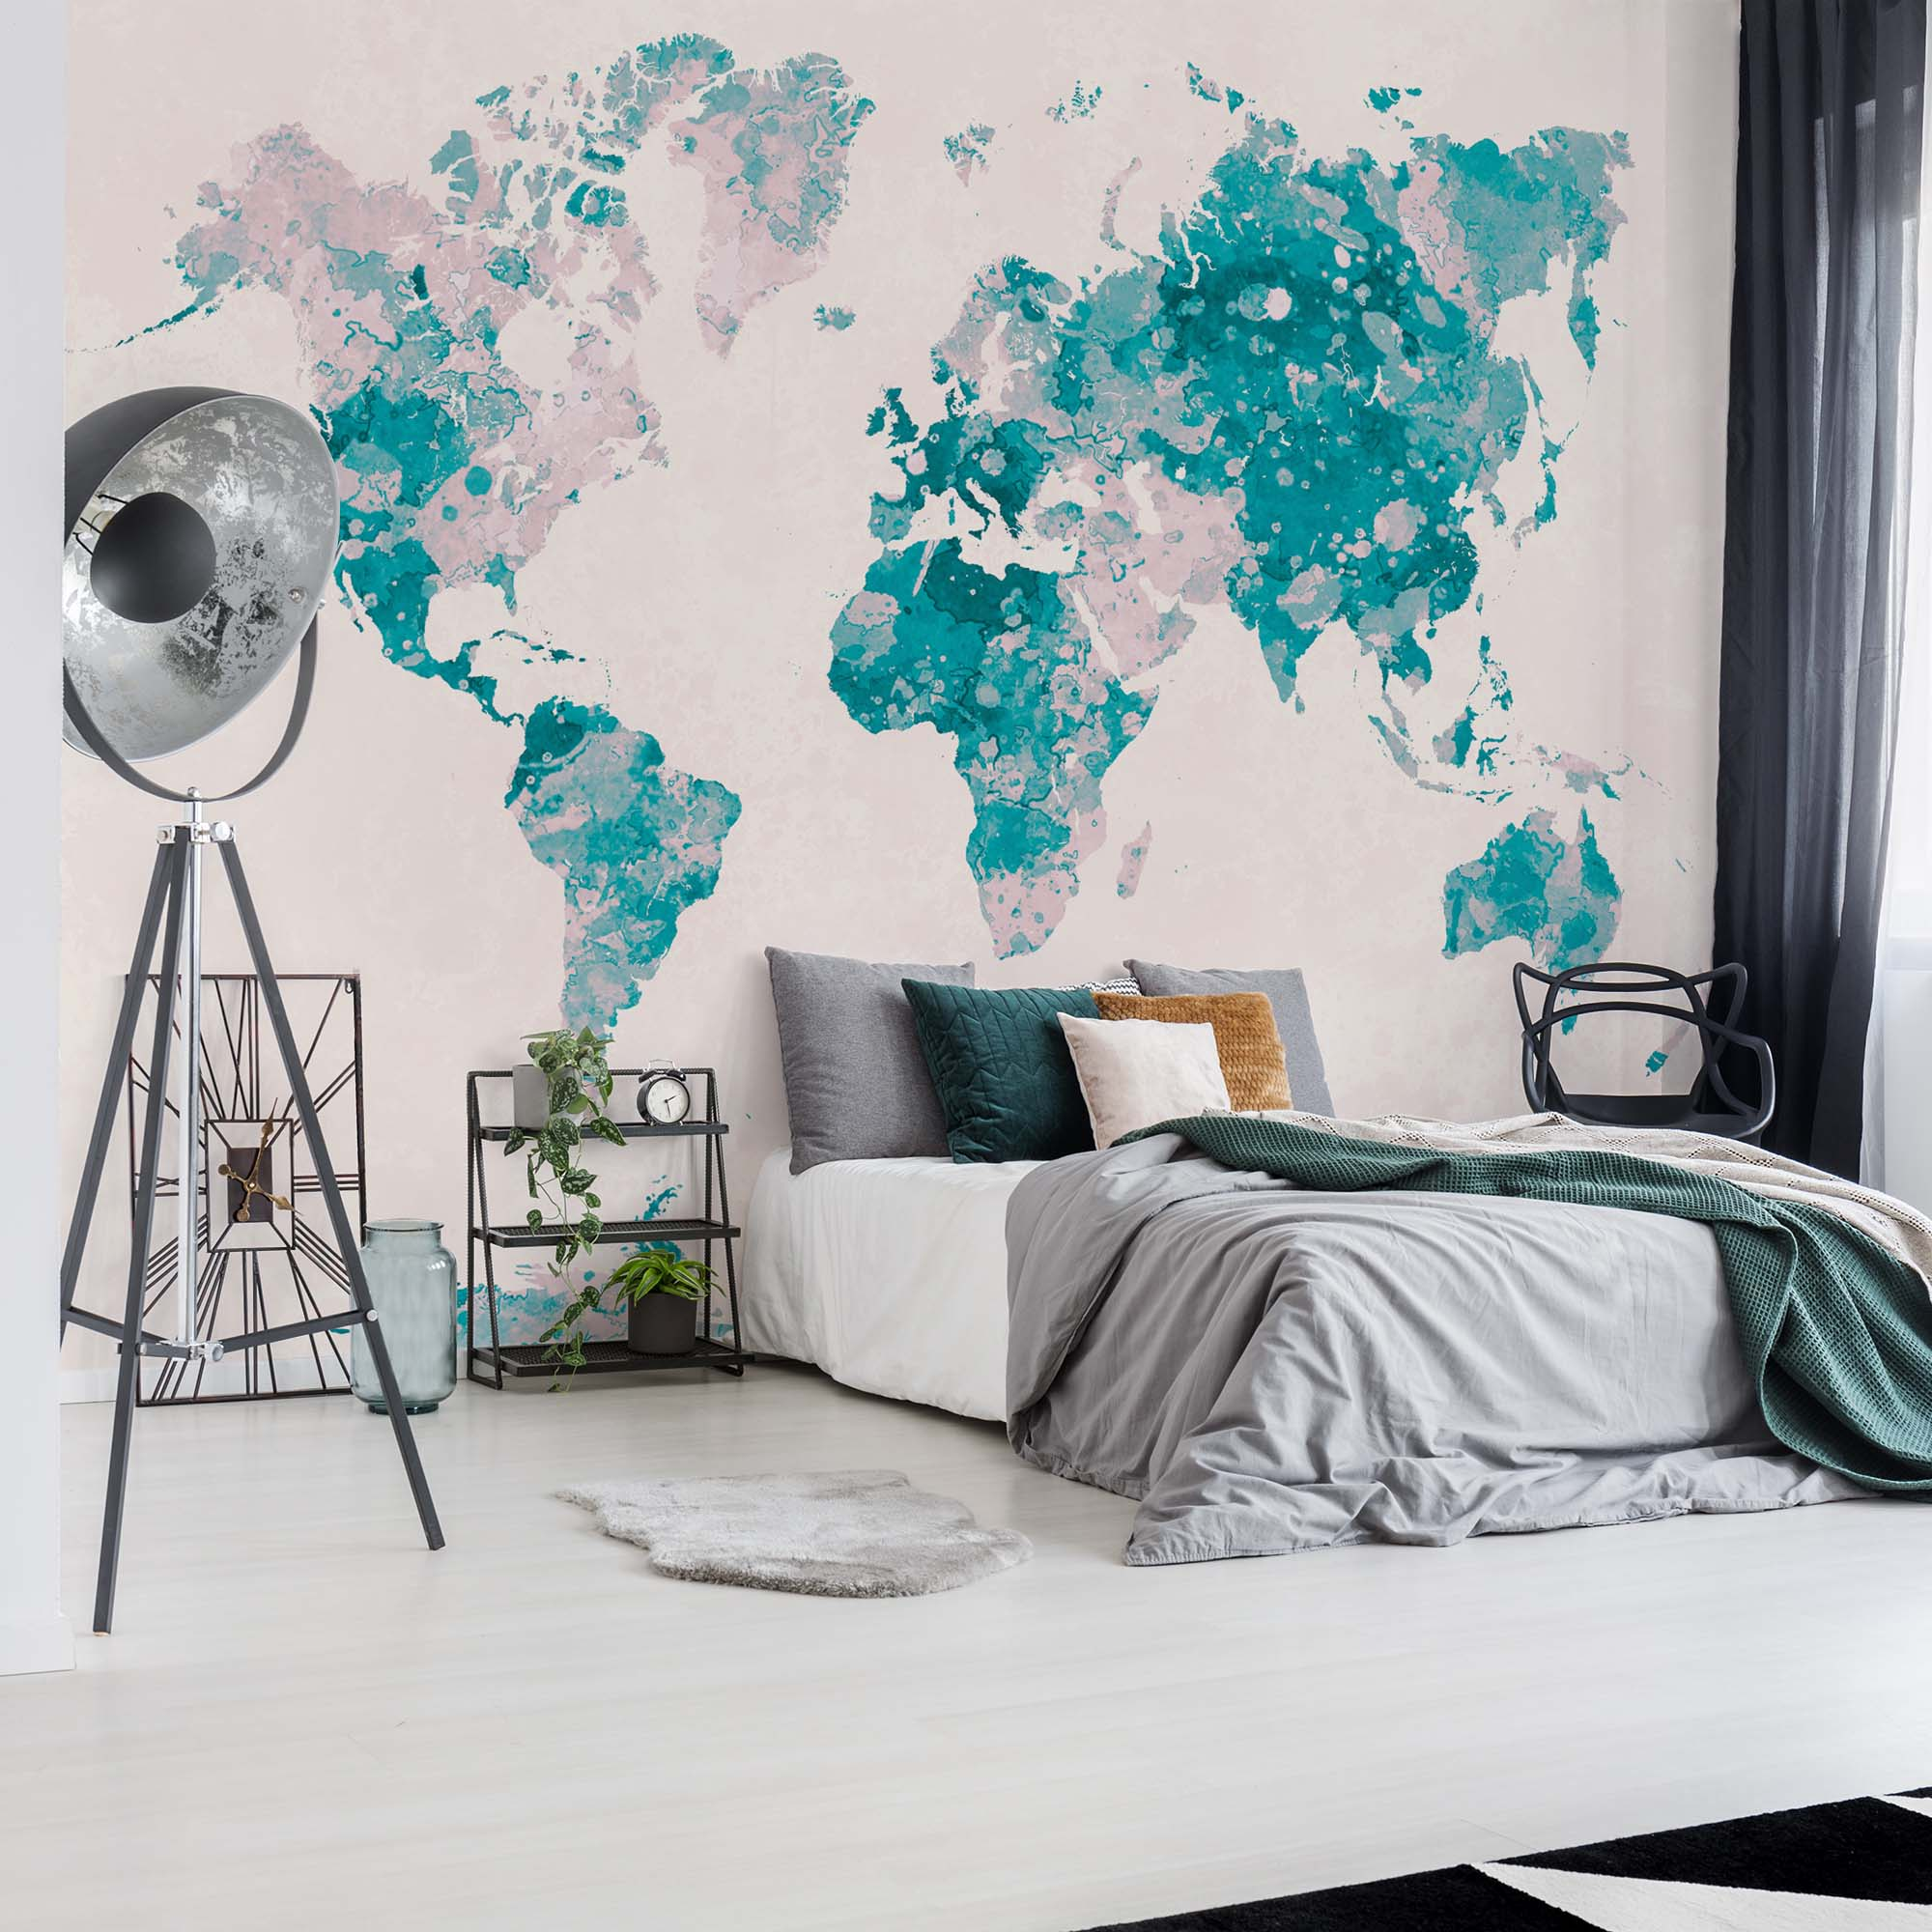 Fotobehang World Map in Turquoise and Pink